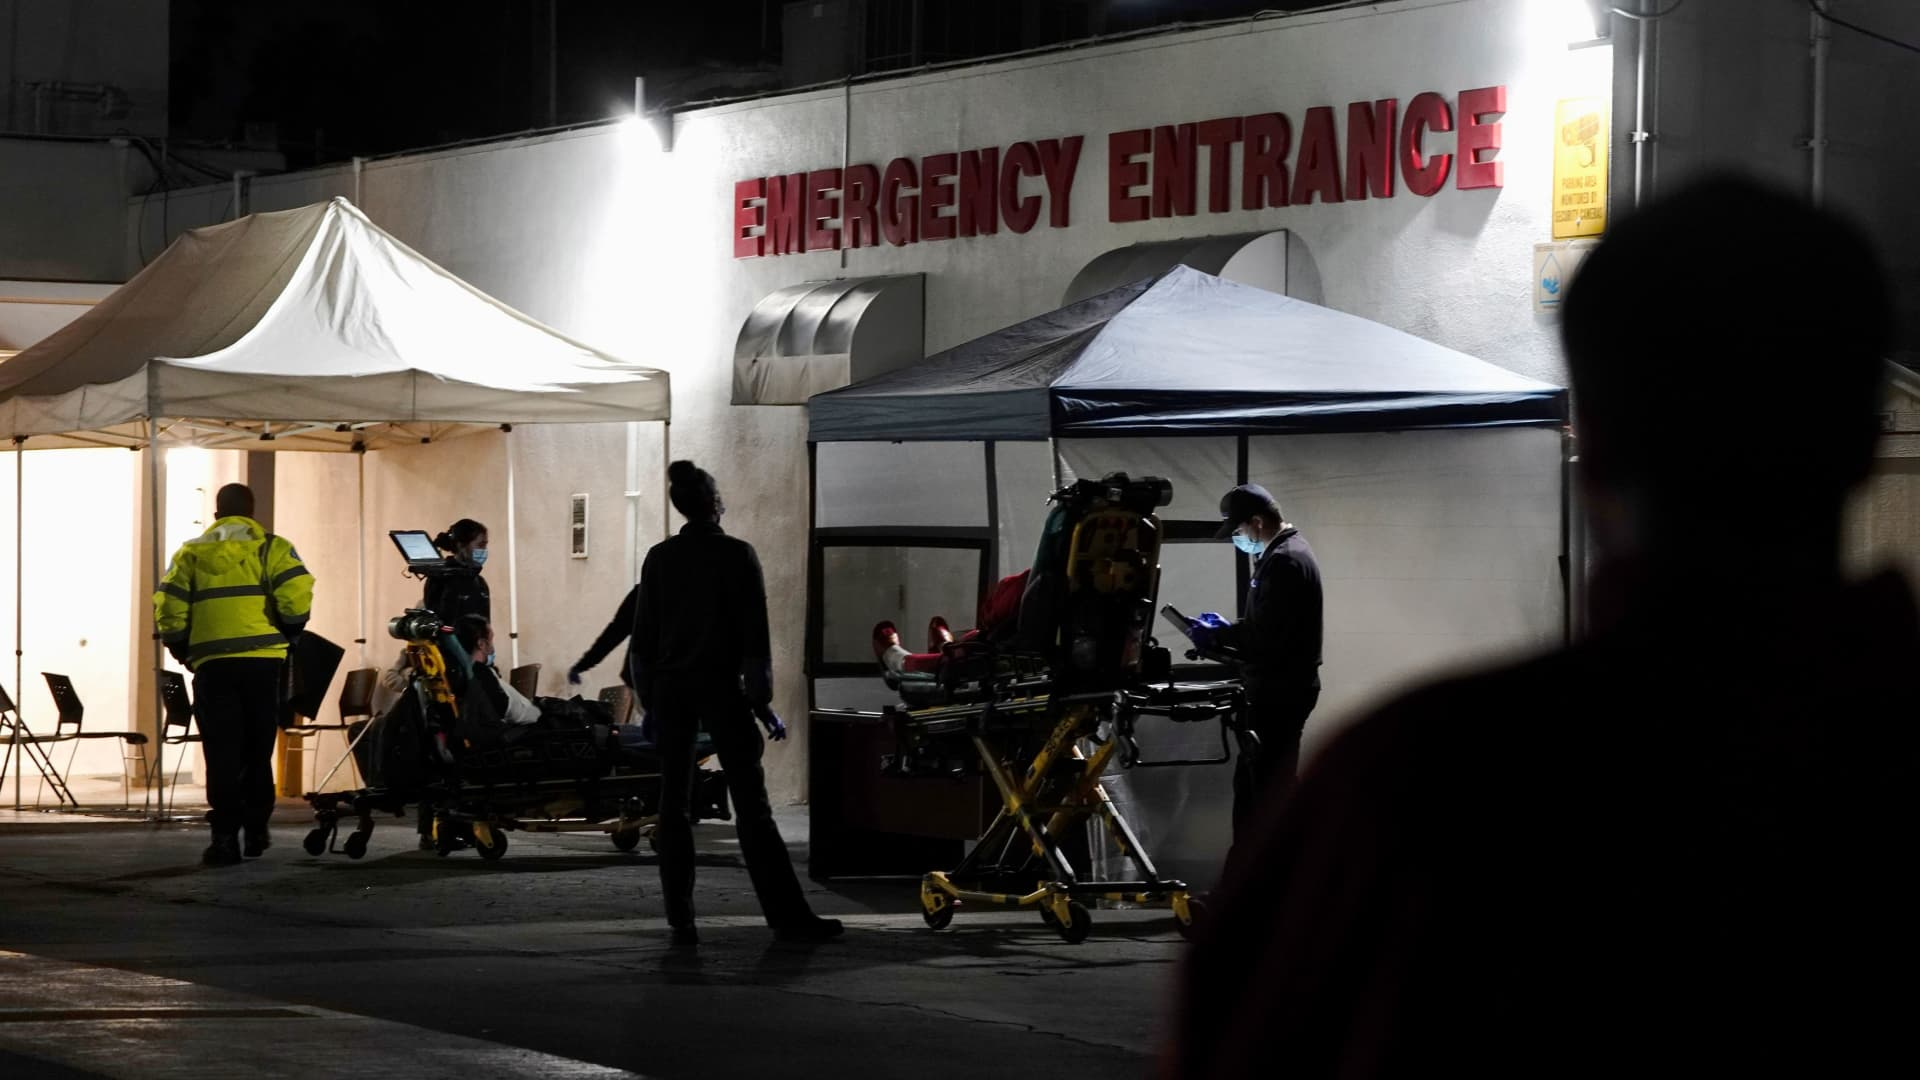 Emergency medical technicians (EMTs) and healthcare workers treat patients outside the emergency room at the Community Hospital of Huntington Park during a surge in positive coronavirus disease (COVID-19) cases in Huntington Park, California, December 29, 2020.